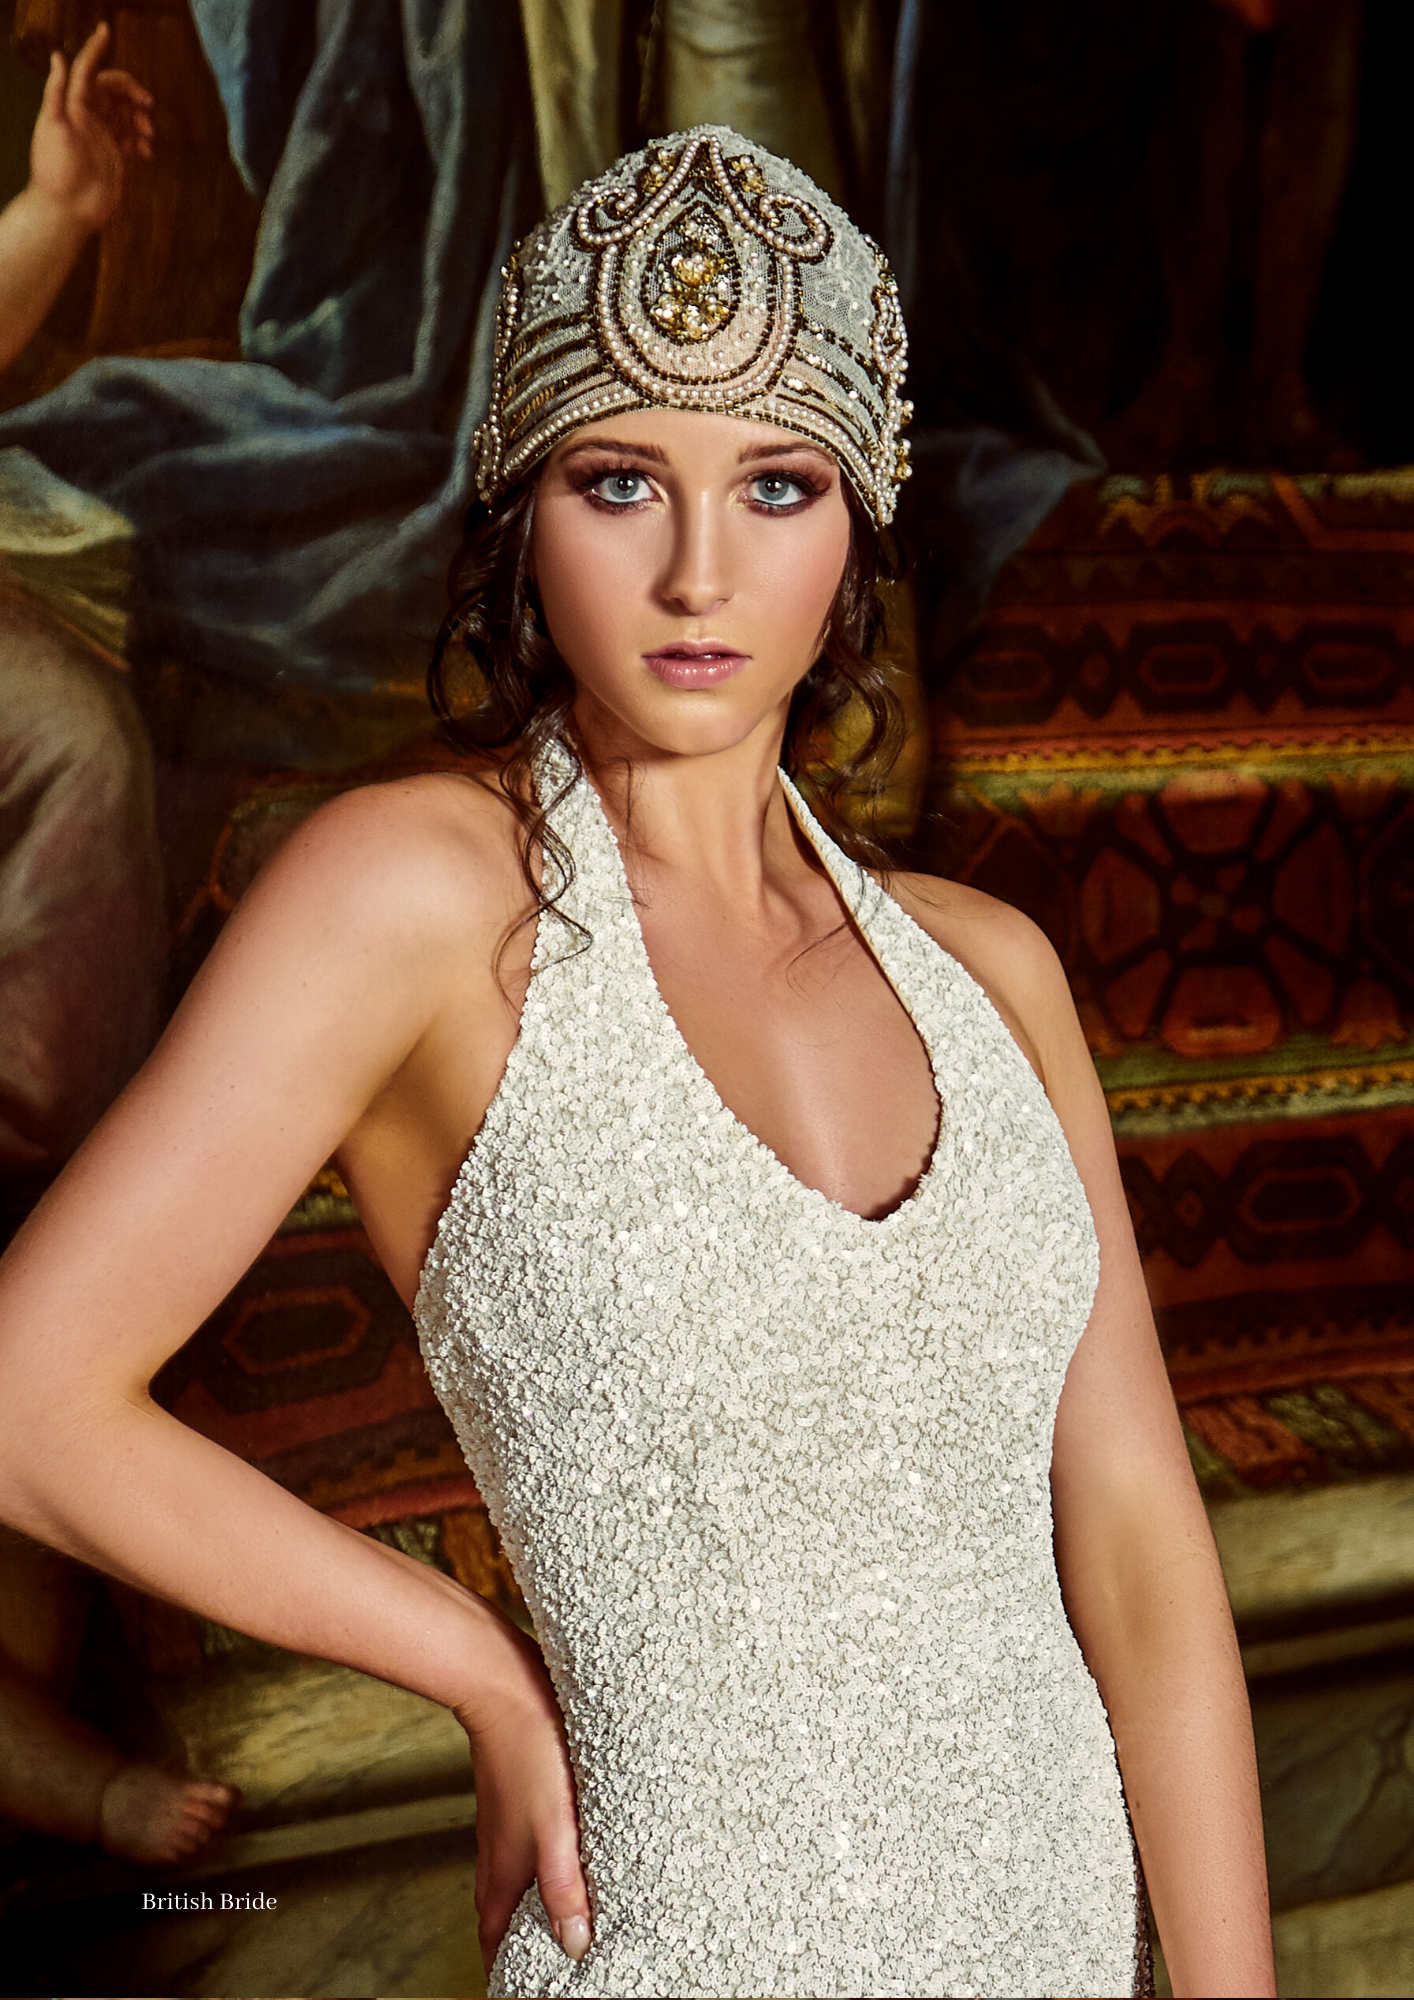 Bridal makeup and fashion for British Bride magazine at The Old Royal Naval College in London